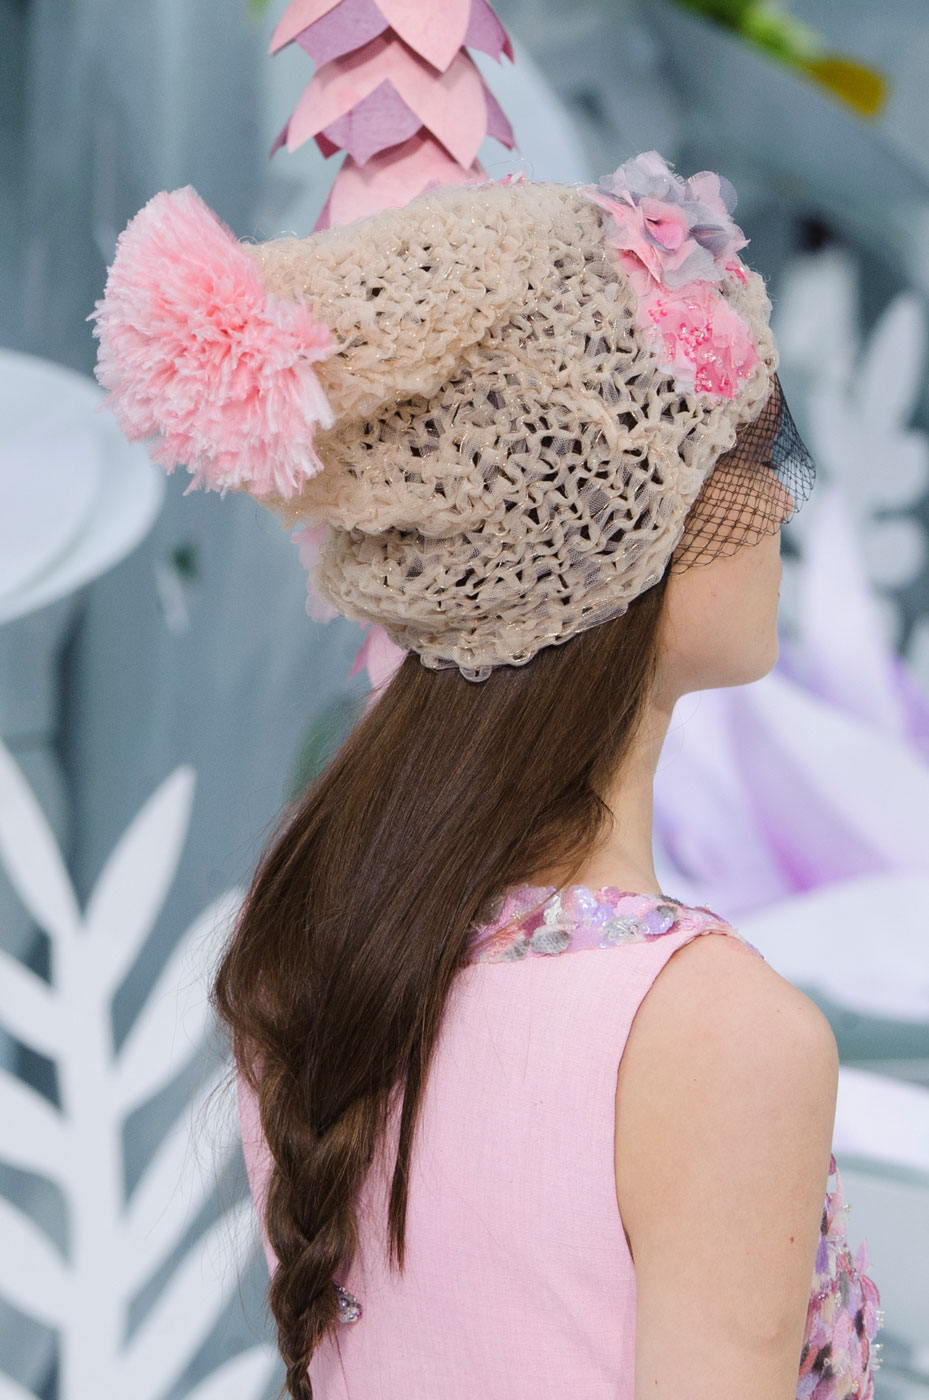 Chanel-fashion-runway-show-close-ups-haute-couture-paris-spring-summer-2015-the-impression-128